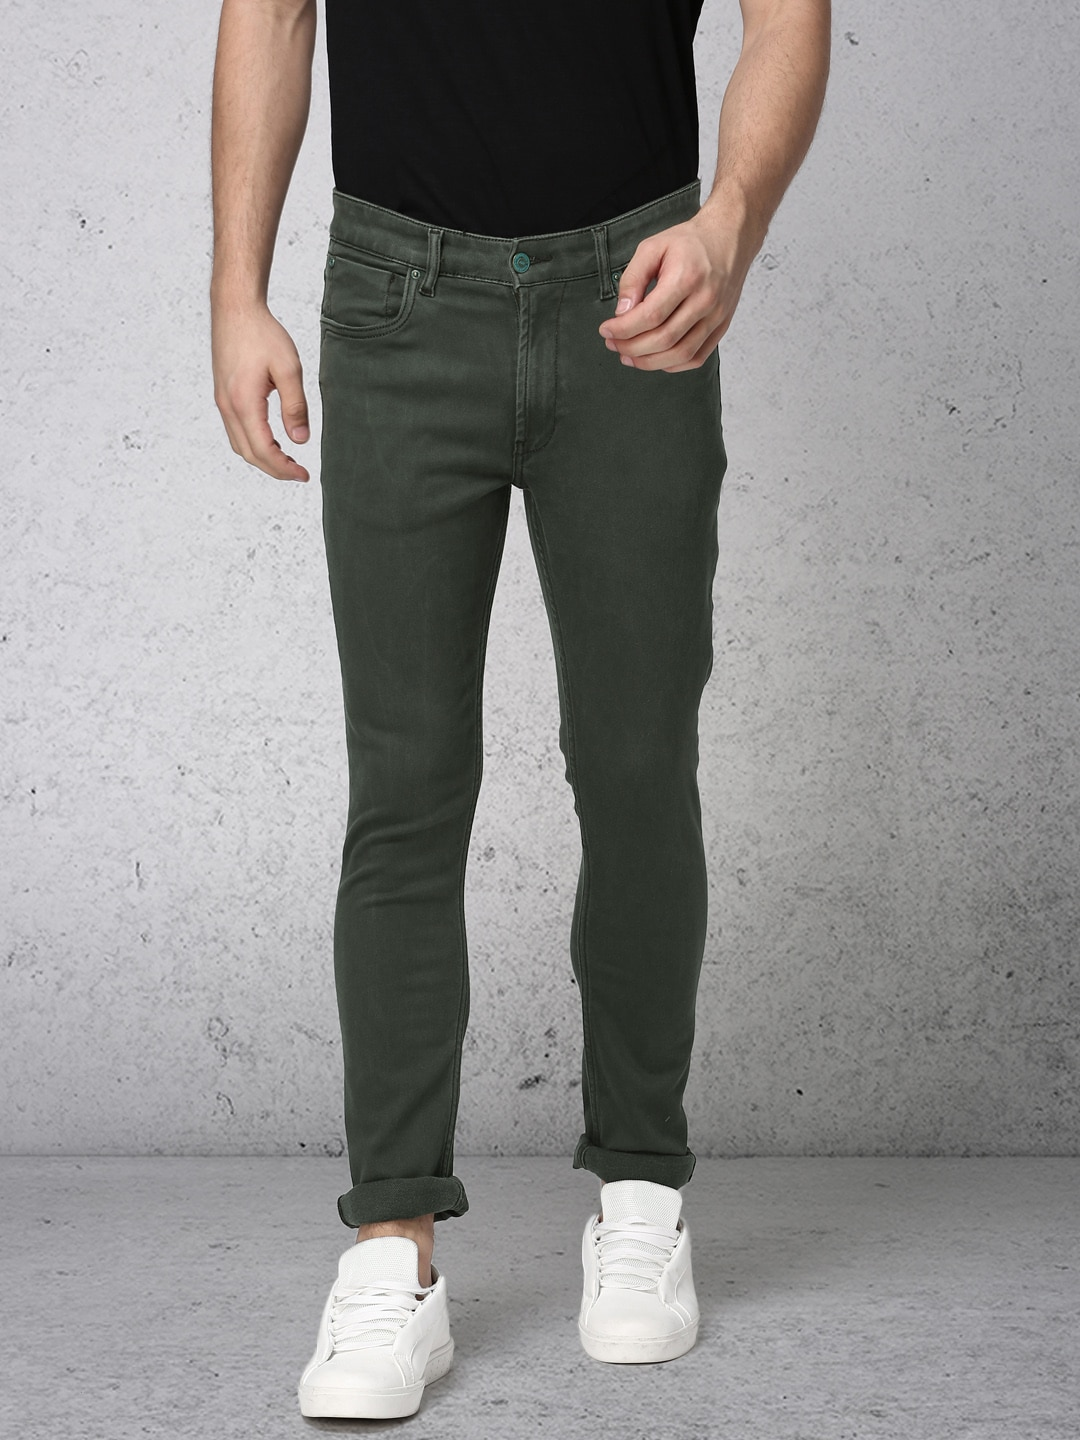 Ecko Unltd Men Olive Green Slim Fit Mid-Rise Clean Look Stretchable Jeans image